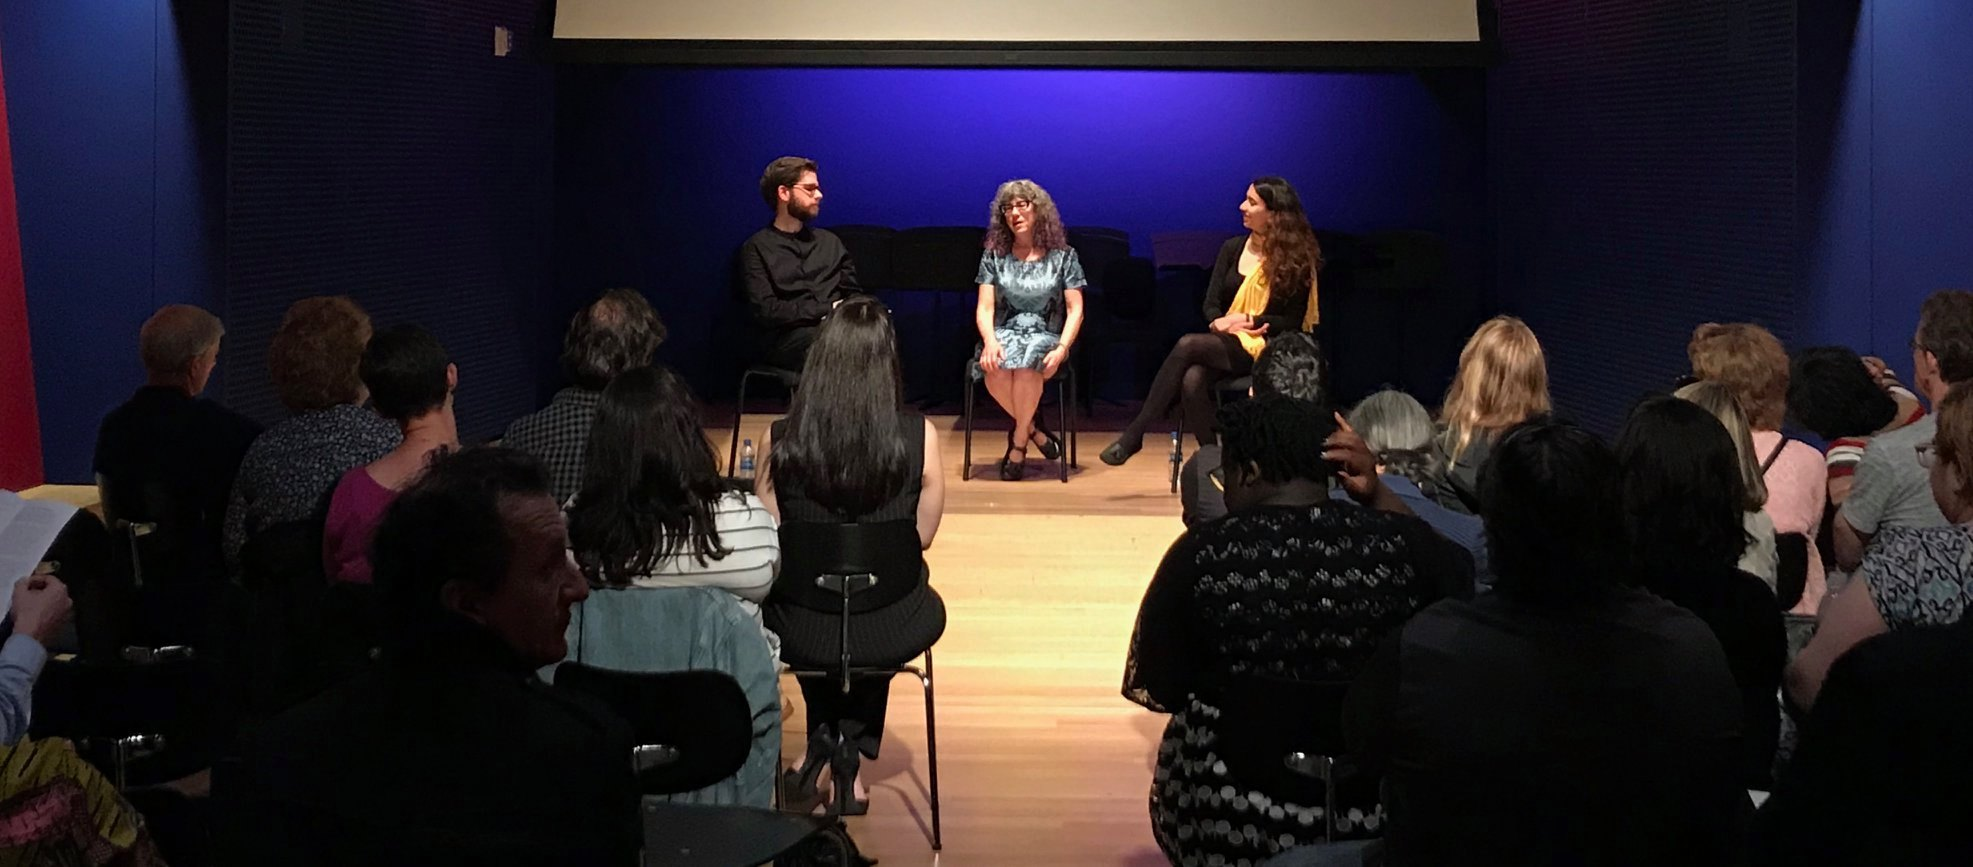 Fantastic Q&A with Marti Epstein, composer; Deniz Khateri, animator; and Jeffrey Means, conductor!